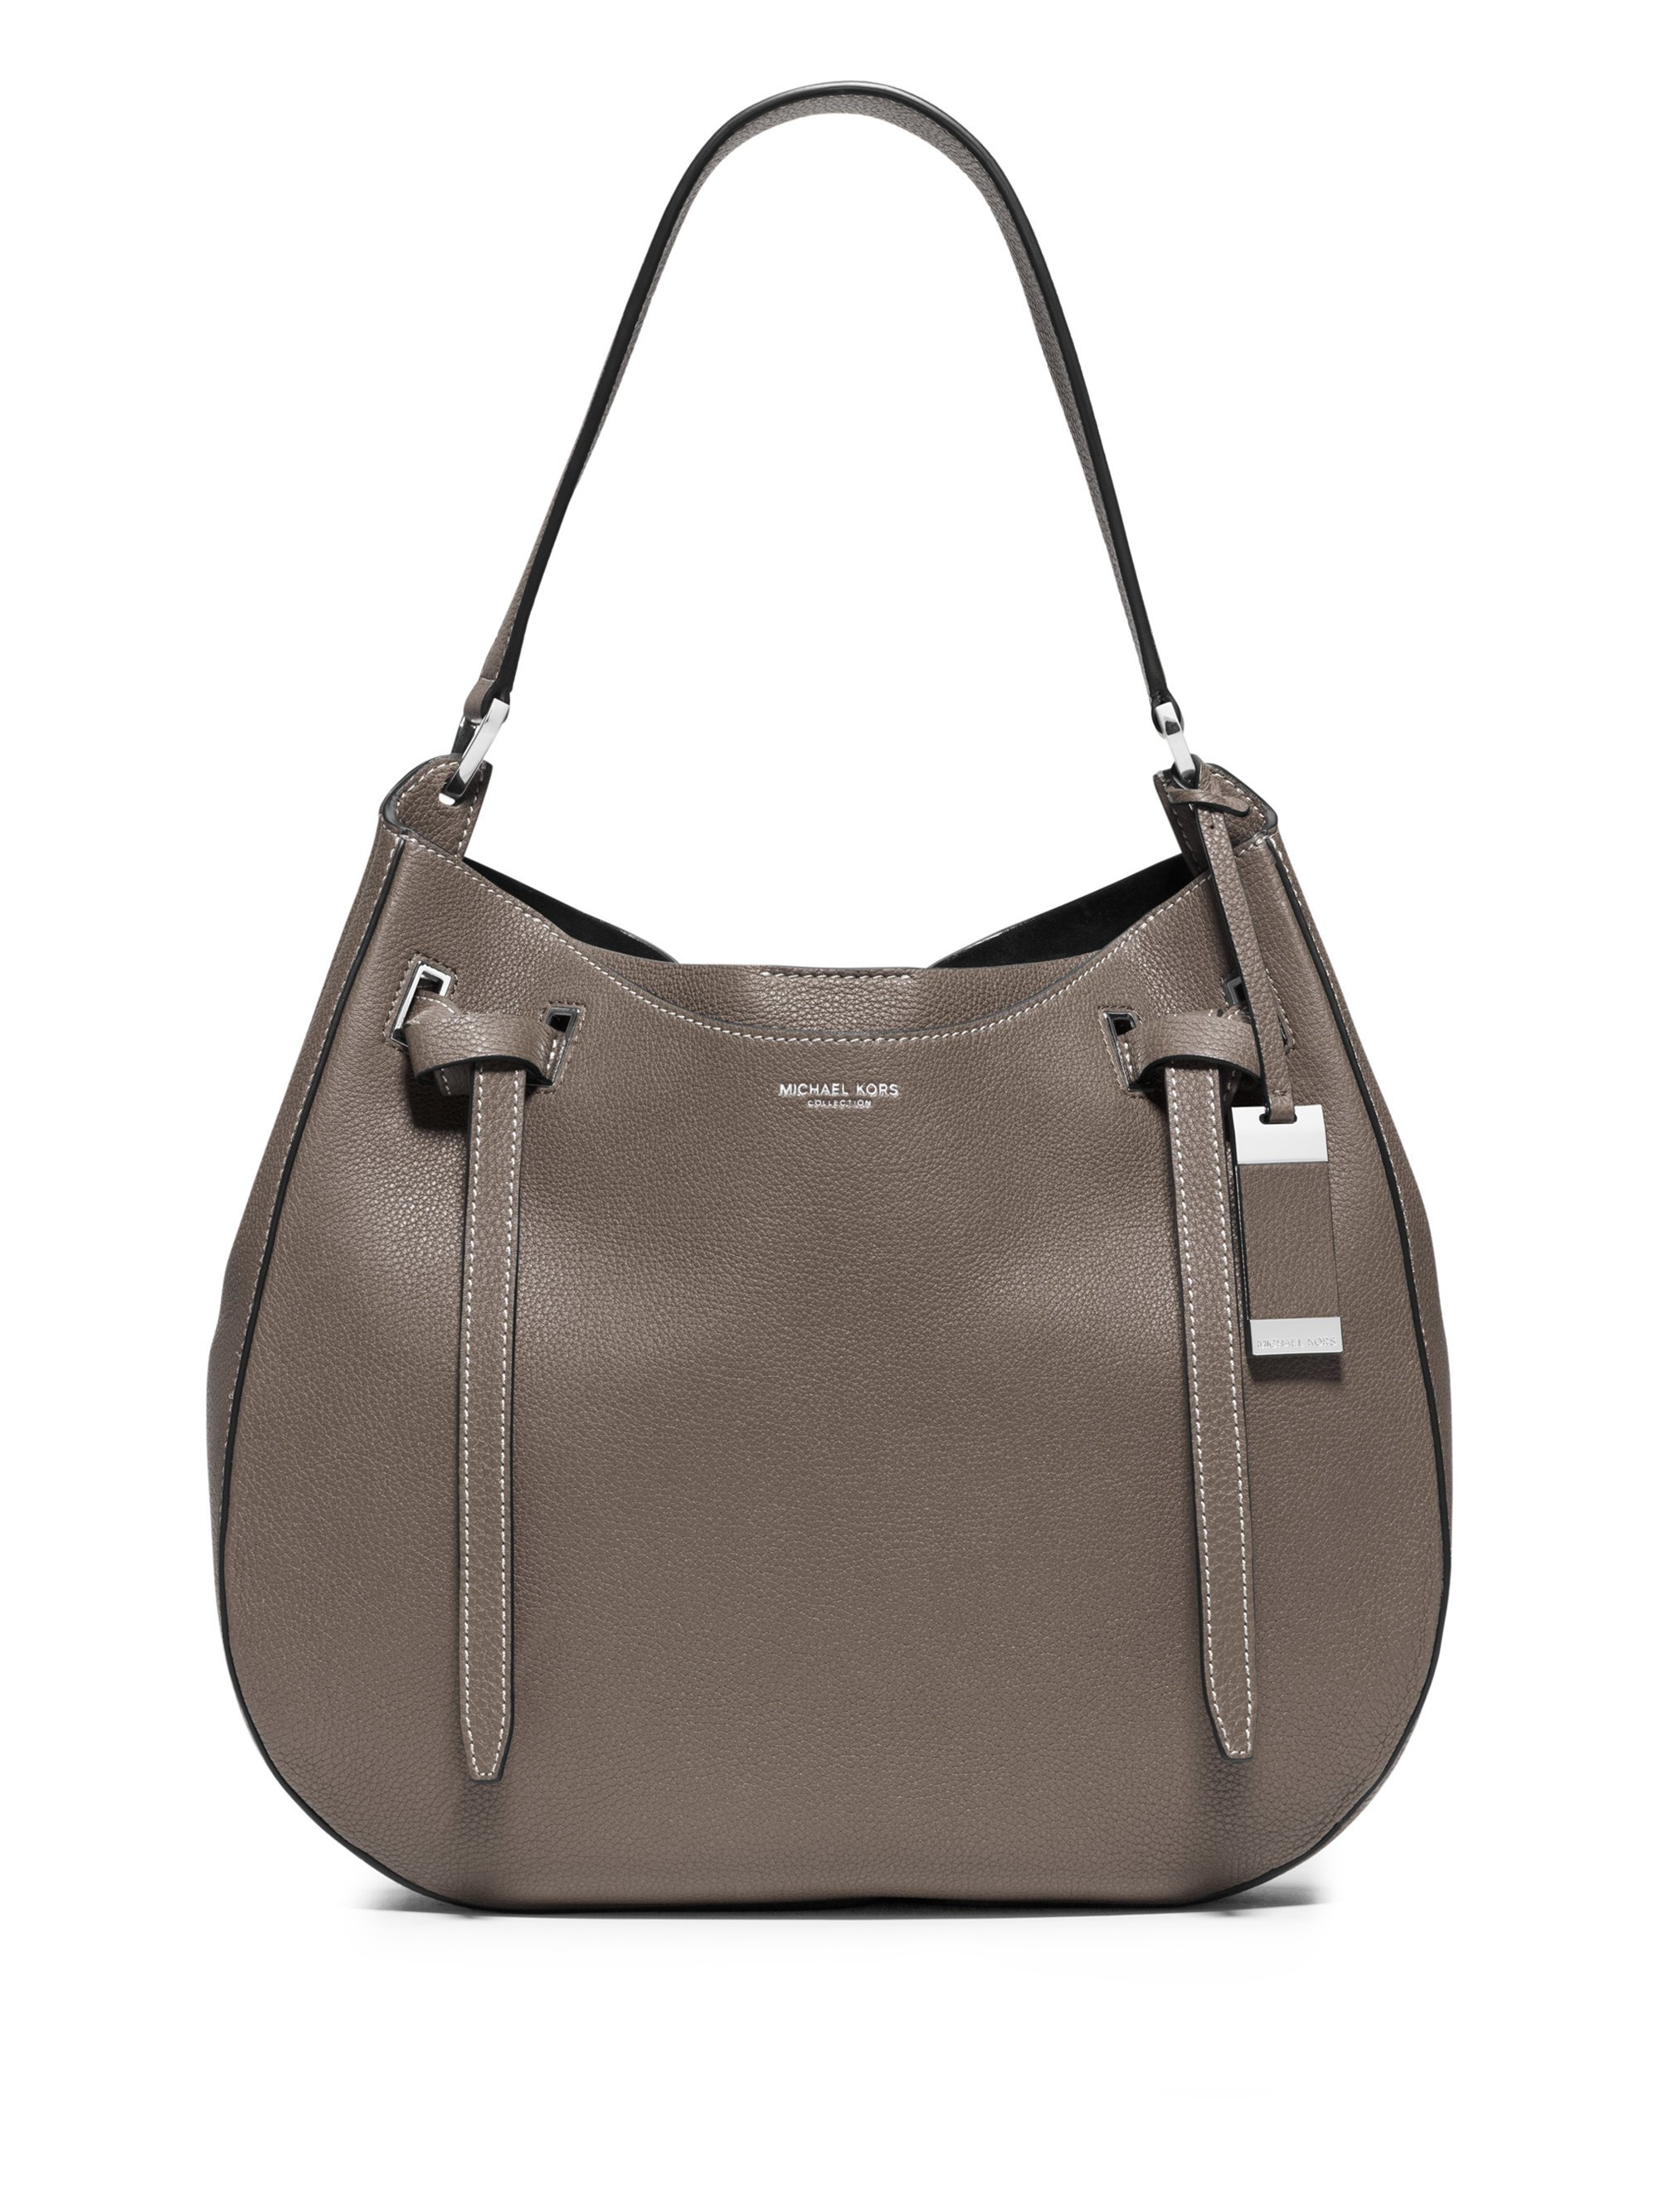 michael kors rogers tie large hobo bag in gray elephant lyst. Black Bedroom Furniture Sets. Home Design Ideas